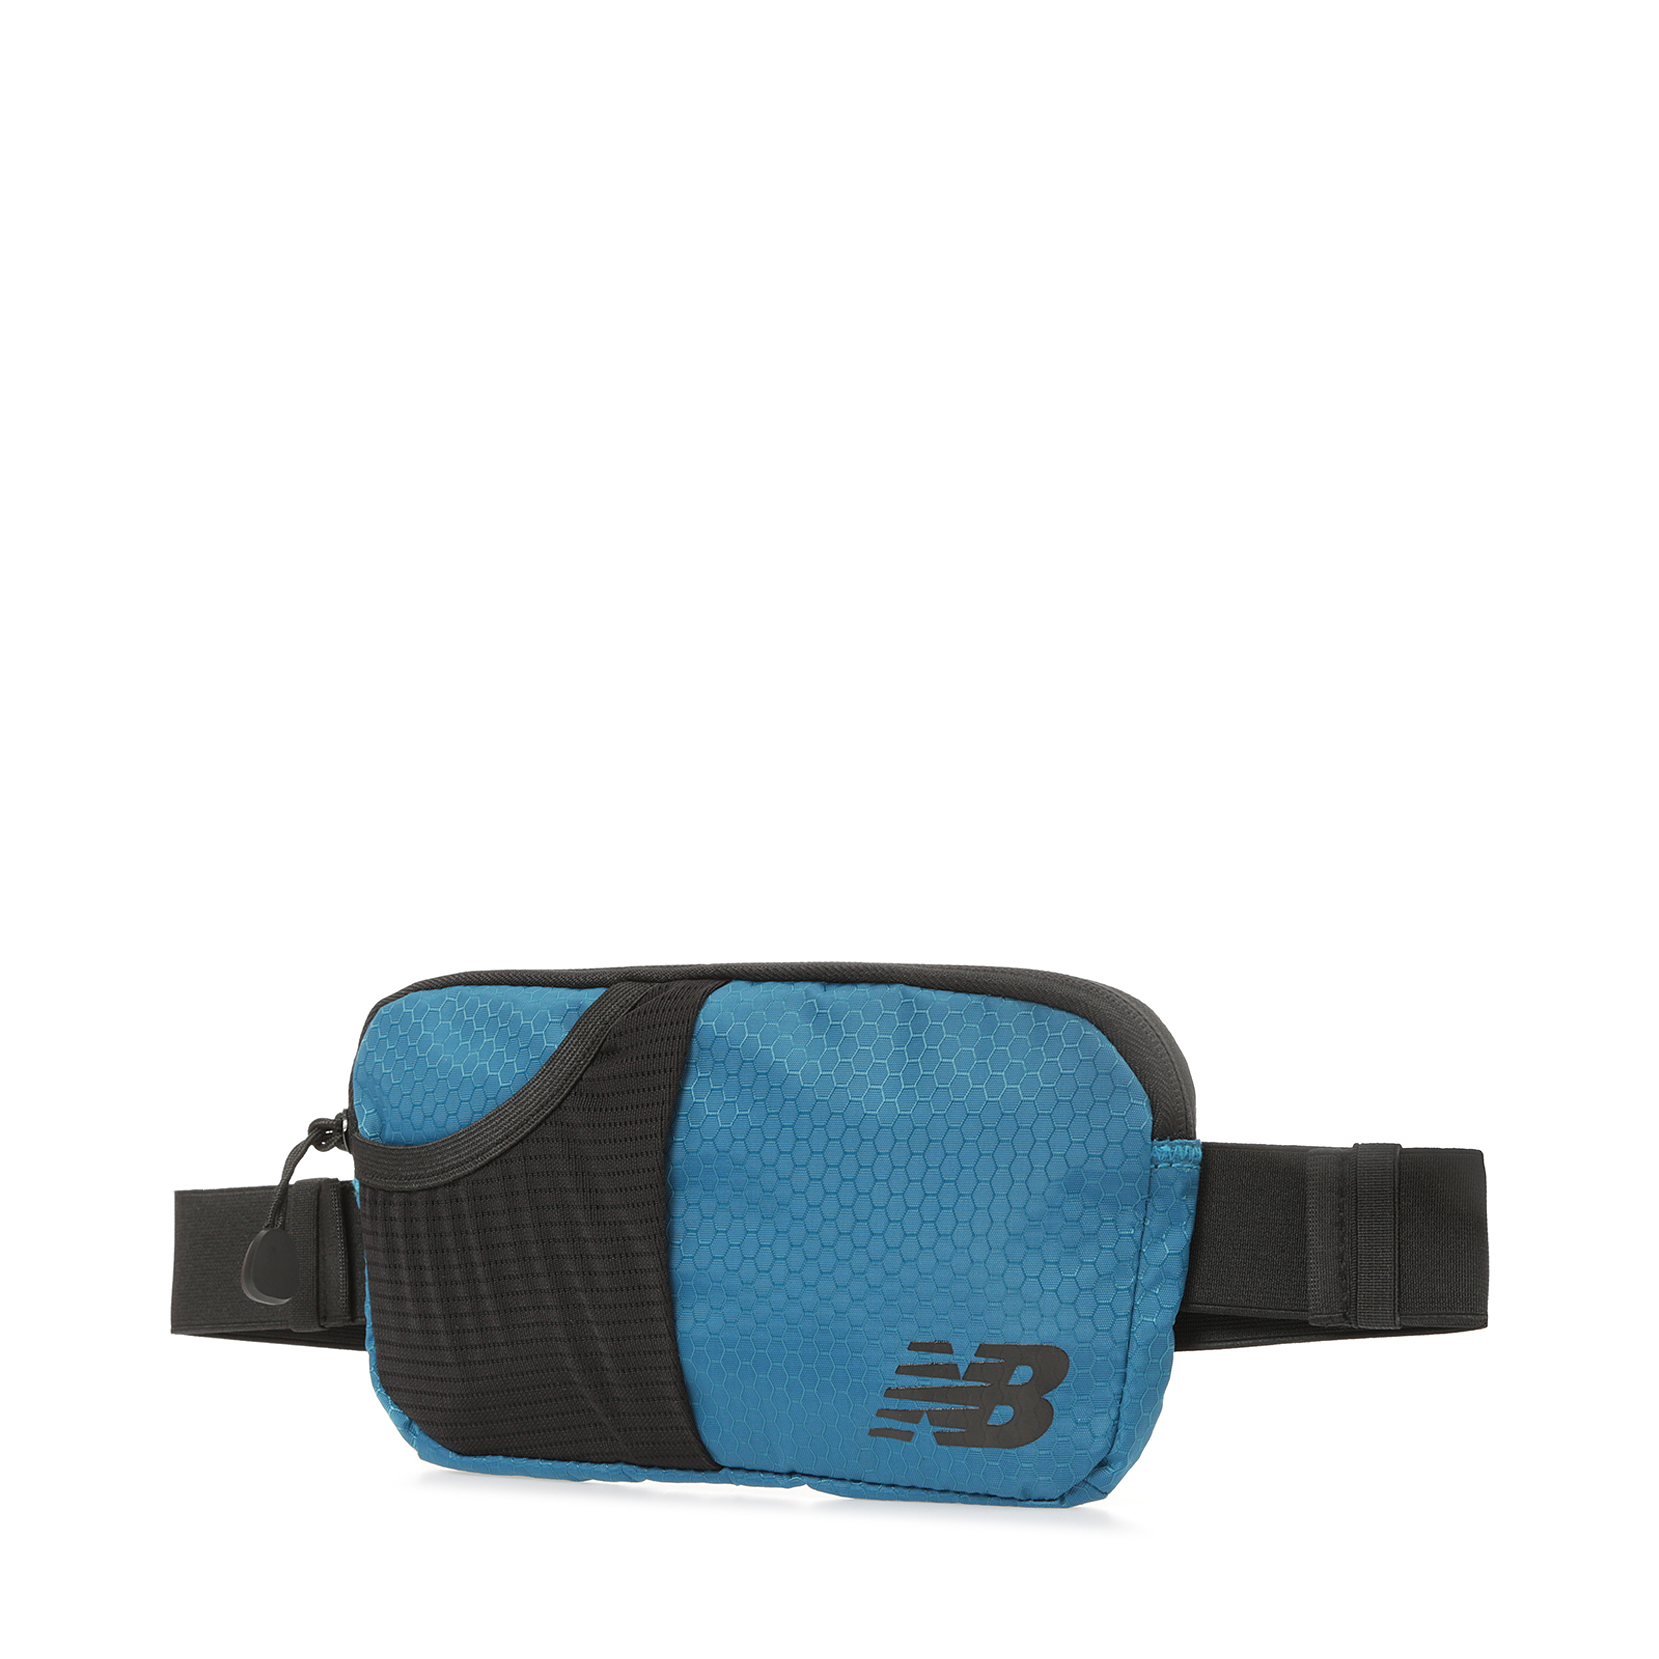 Поясна сумка Performance Waist Pack LAB91030DNP | New Balance